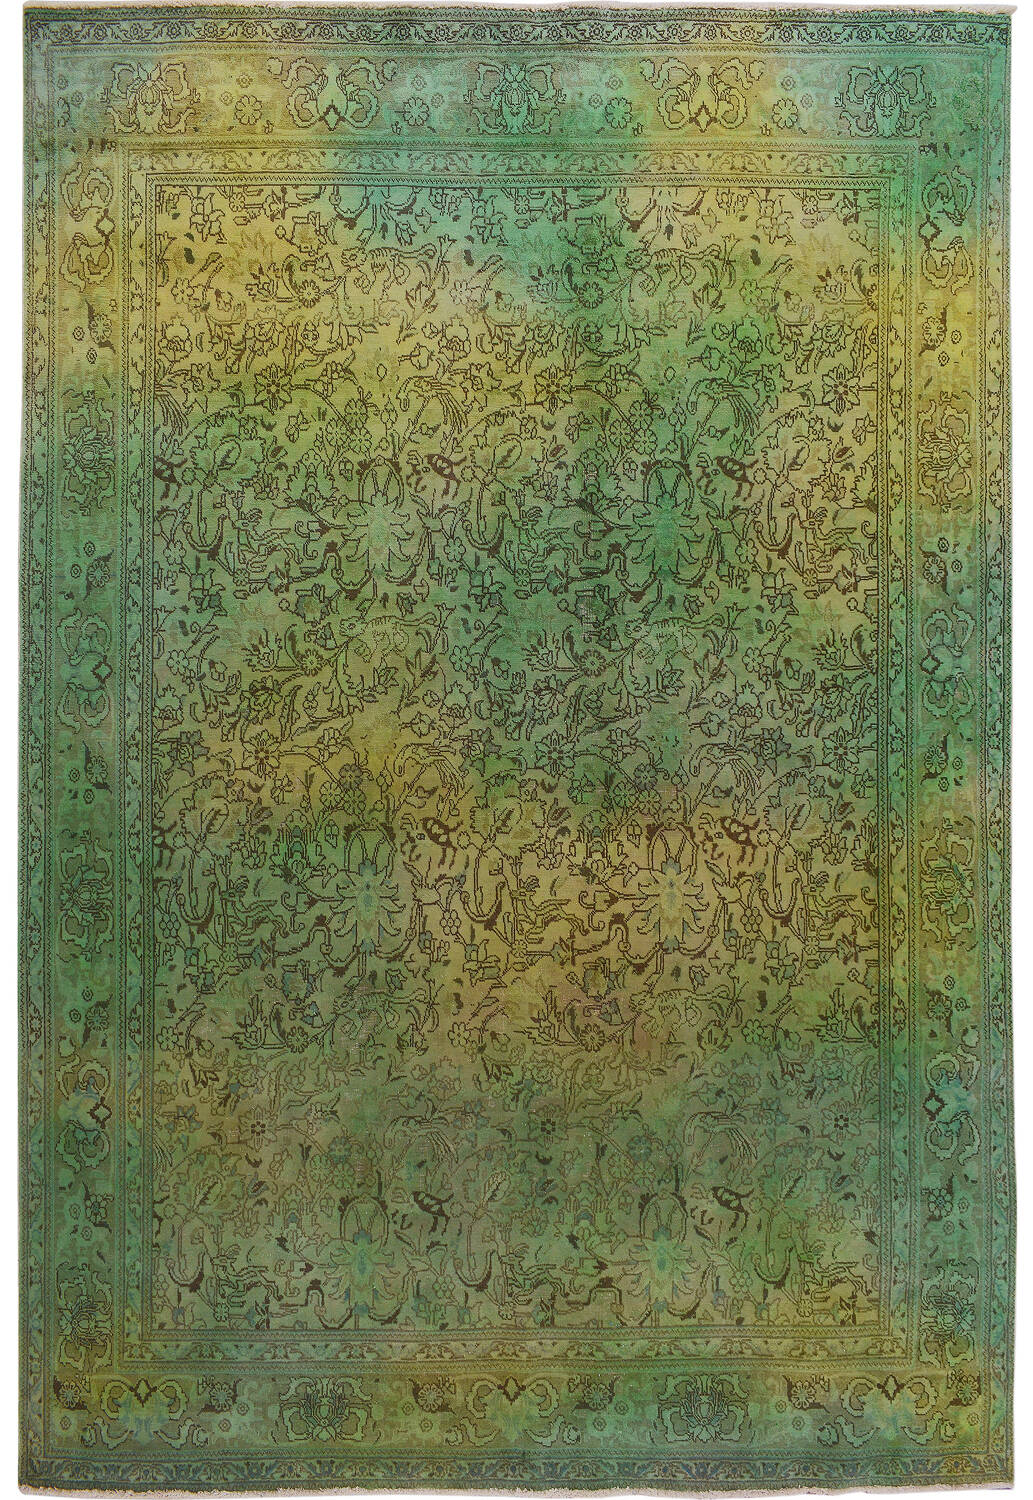 Antique Floral Tabriz Persian Over Dyed Area Rug 8x11 image 1